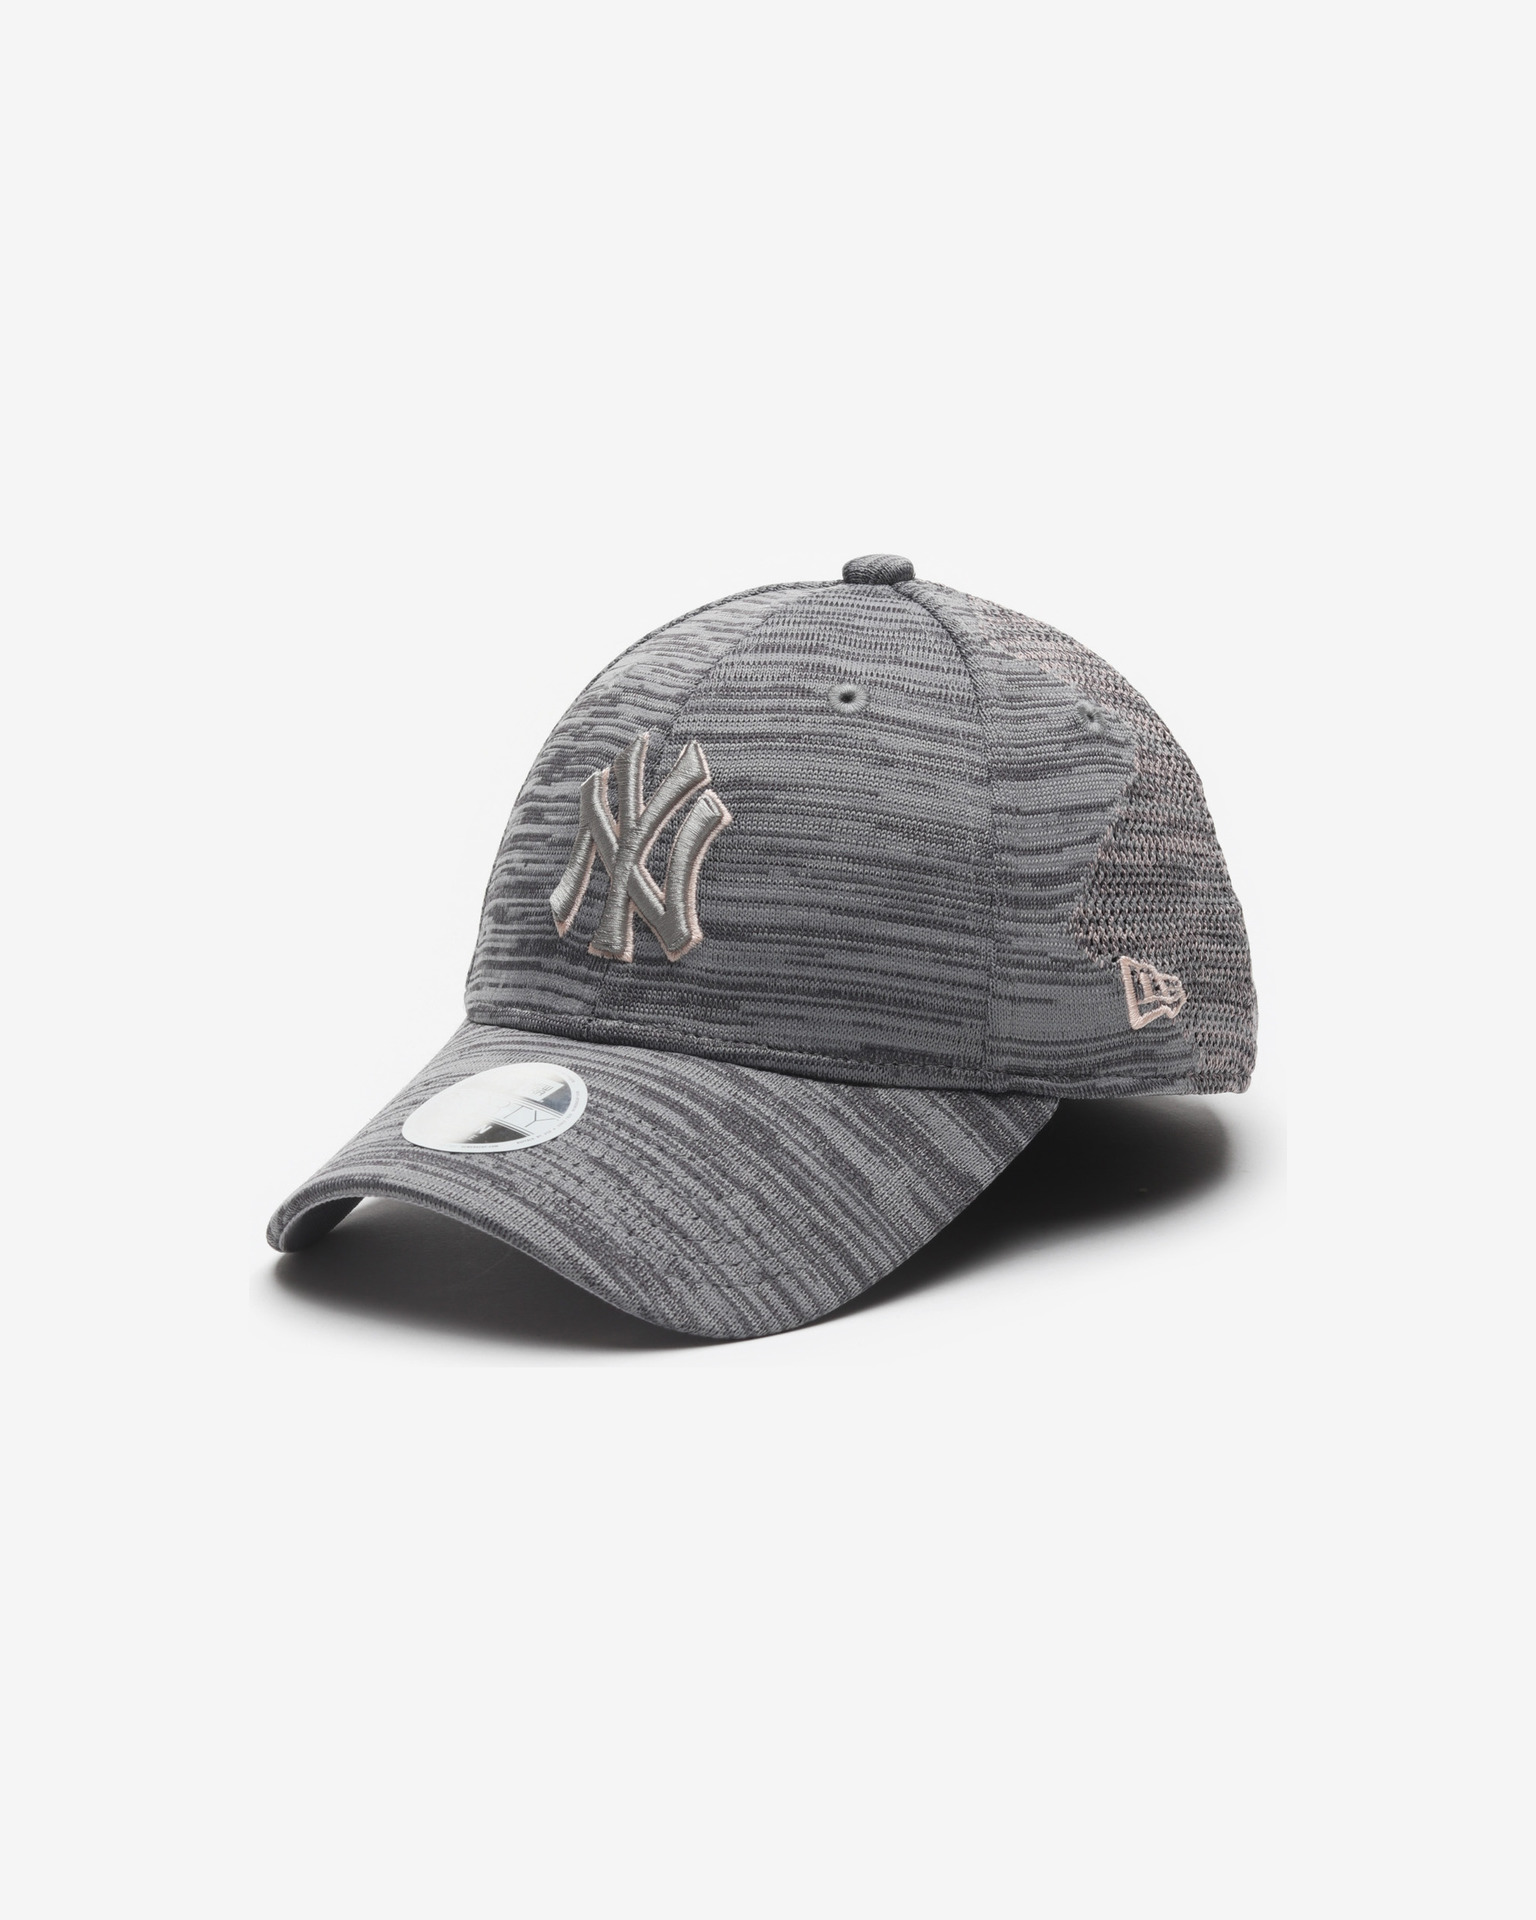 New York Yankees Šiltovka New Era